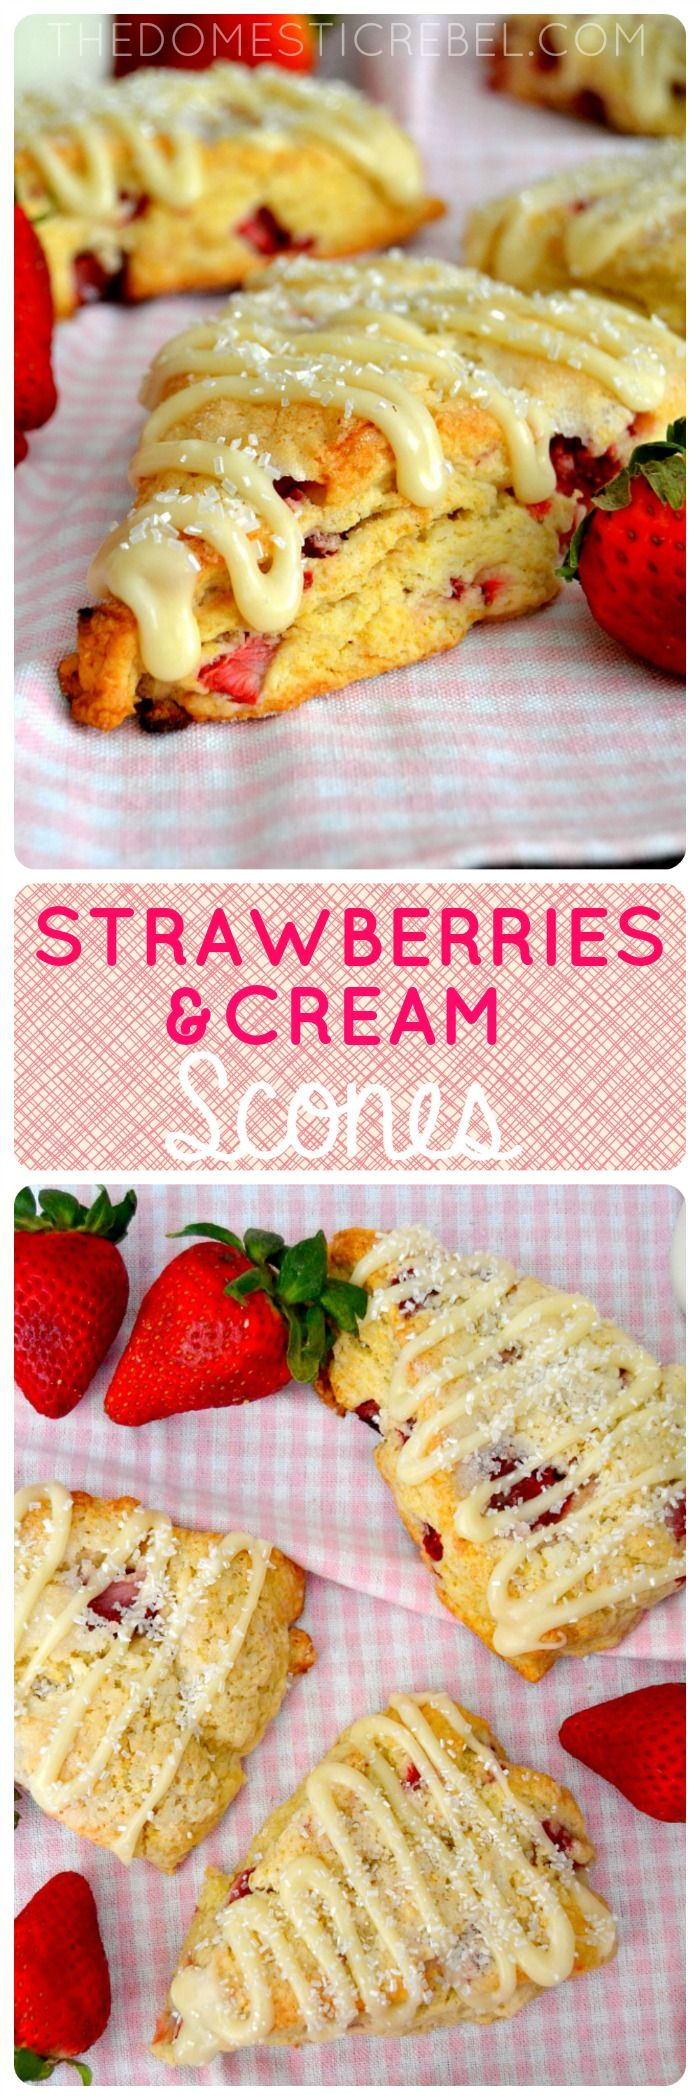 Strawberry Cheesecake Recipe   Baked by an Introvert